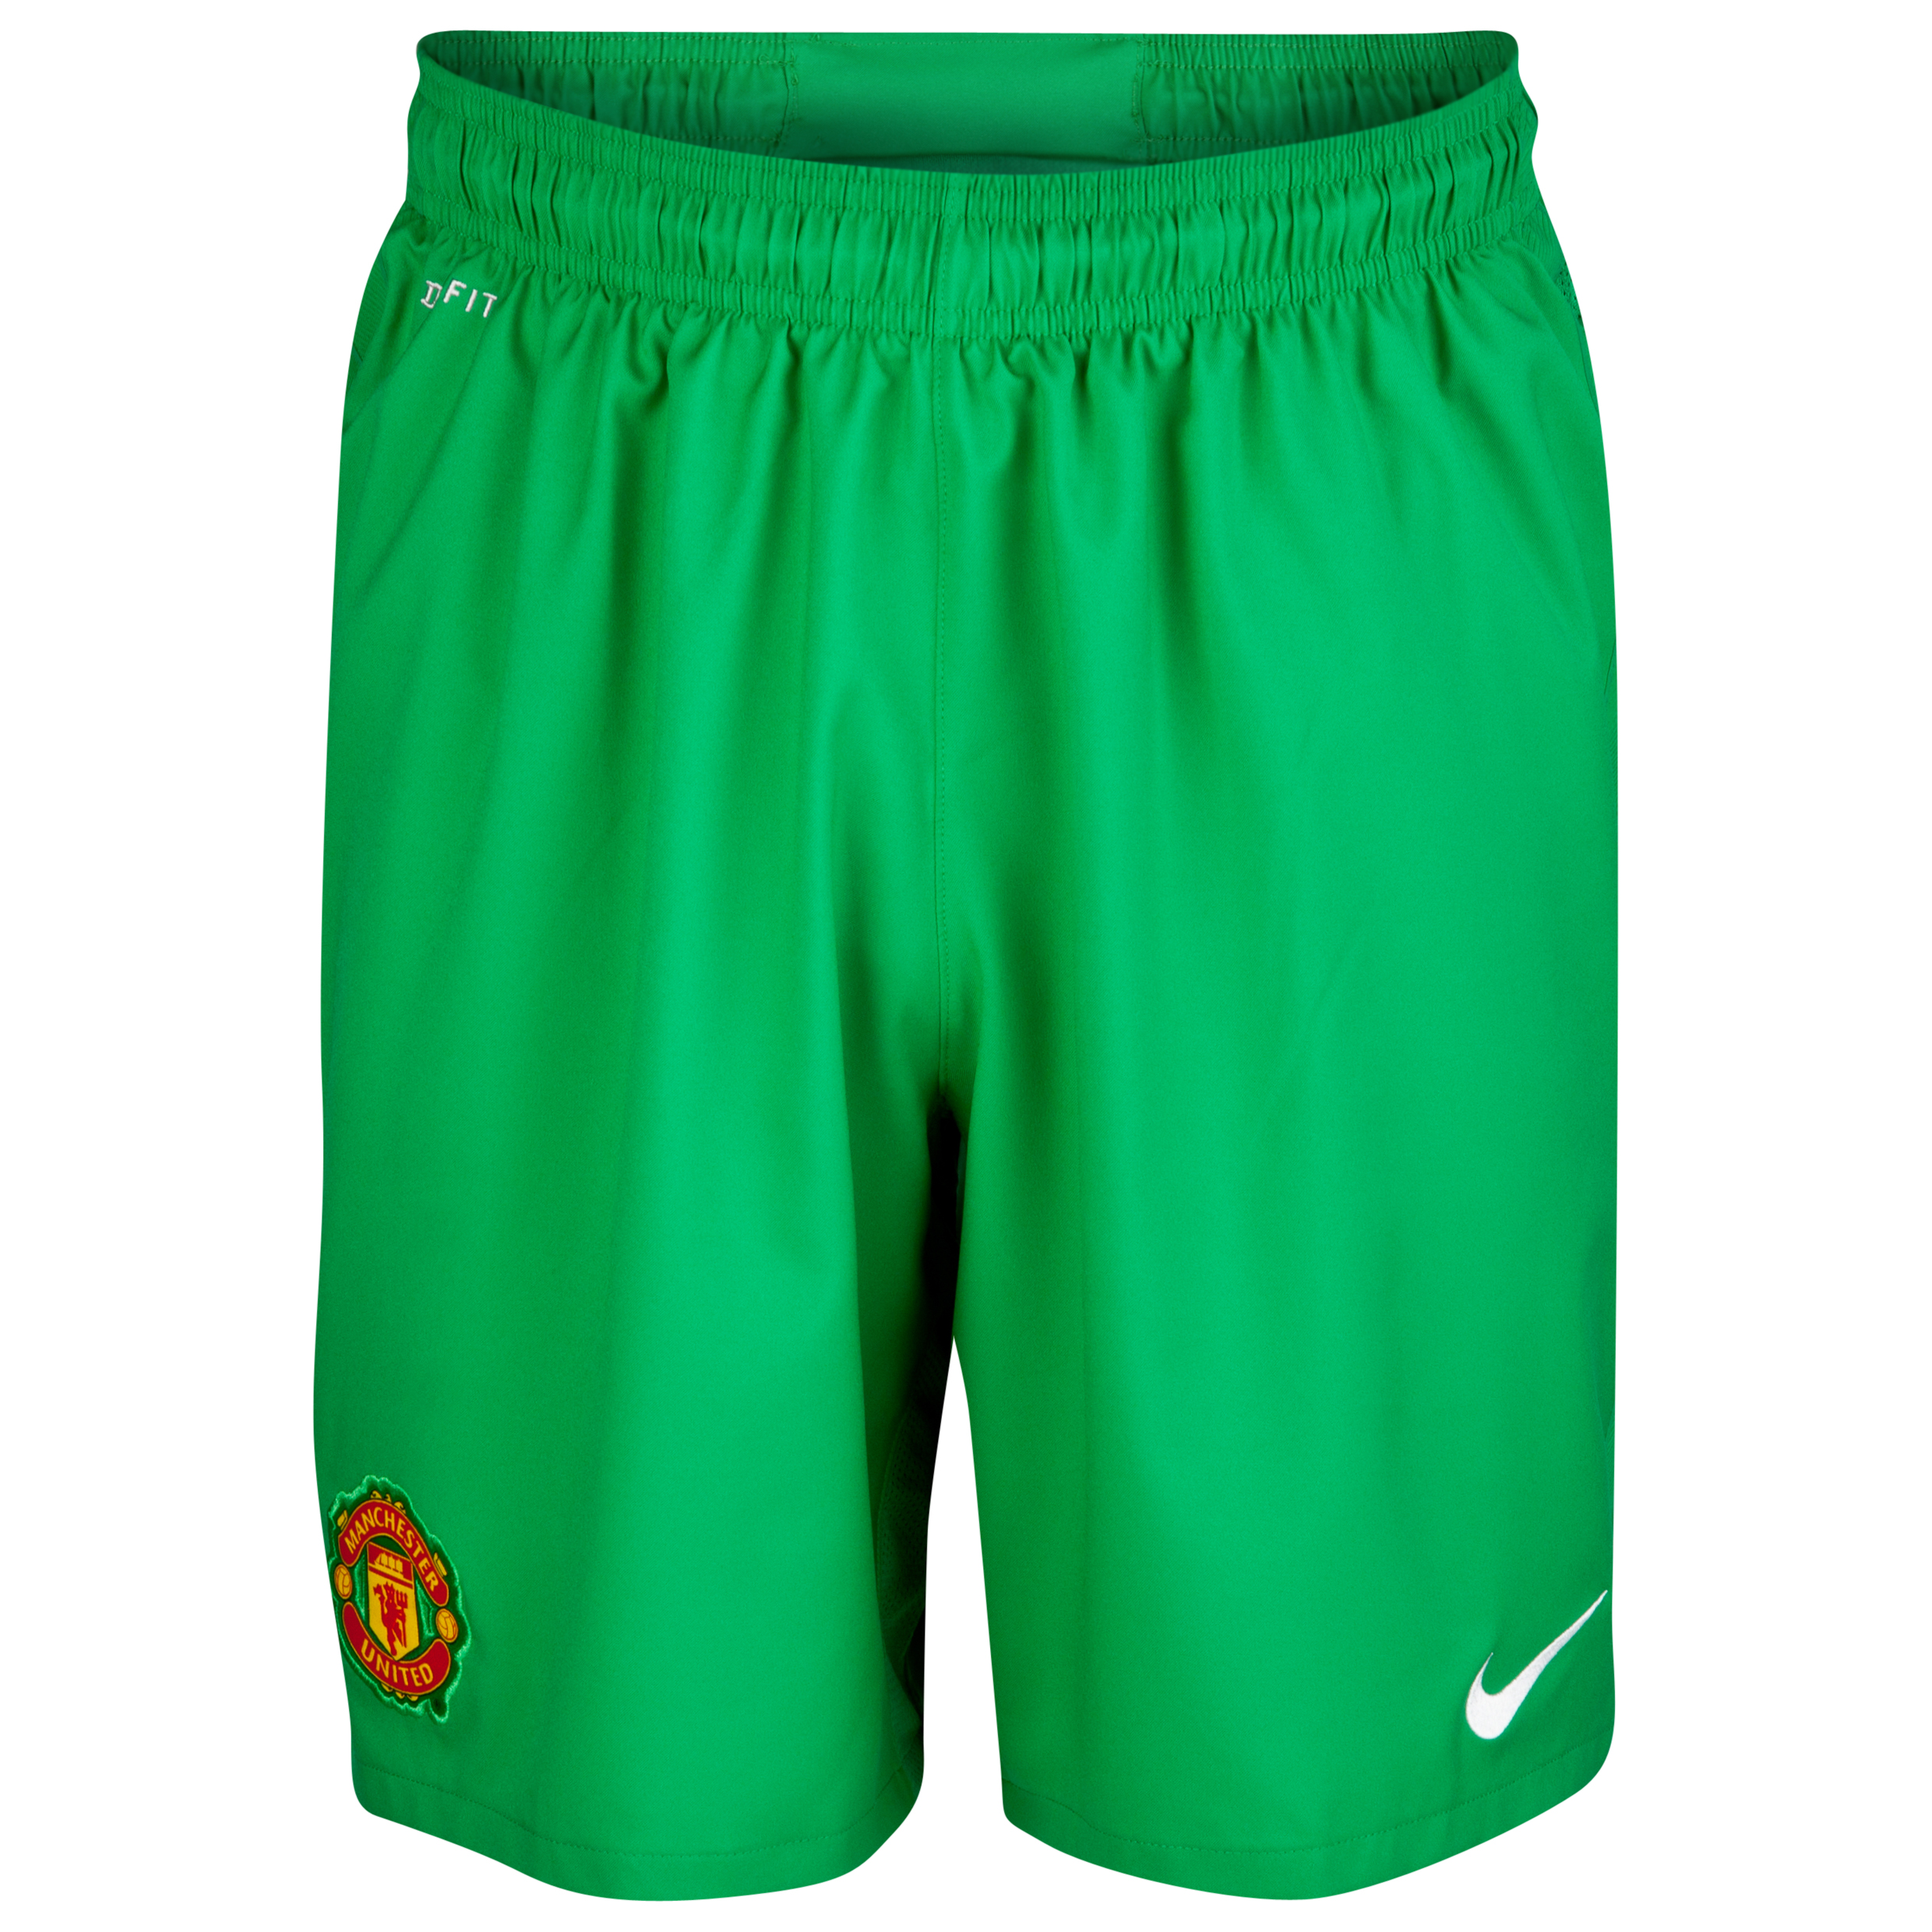 Manchester United Home Goalkeeper Shorts 2012/13